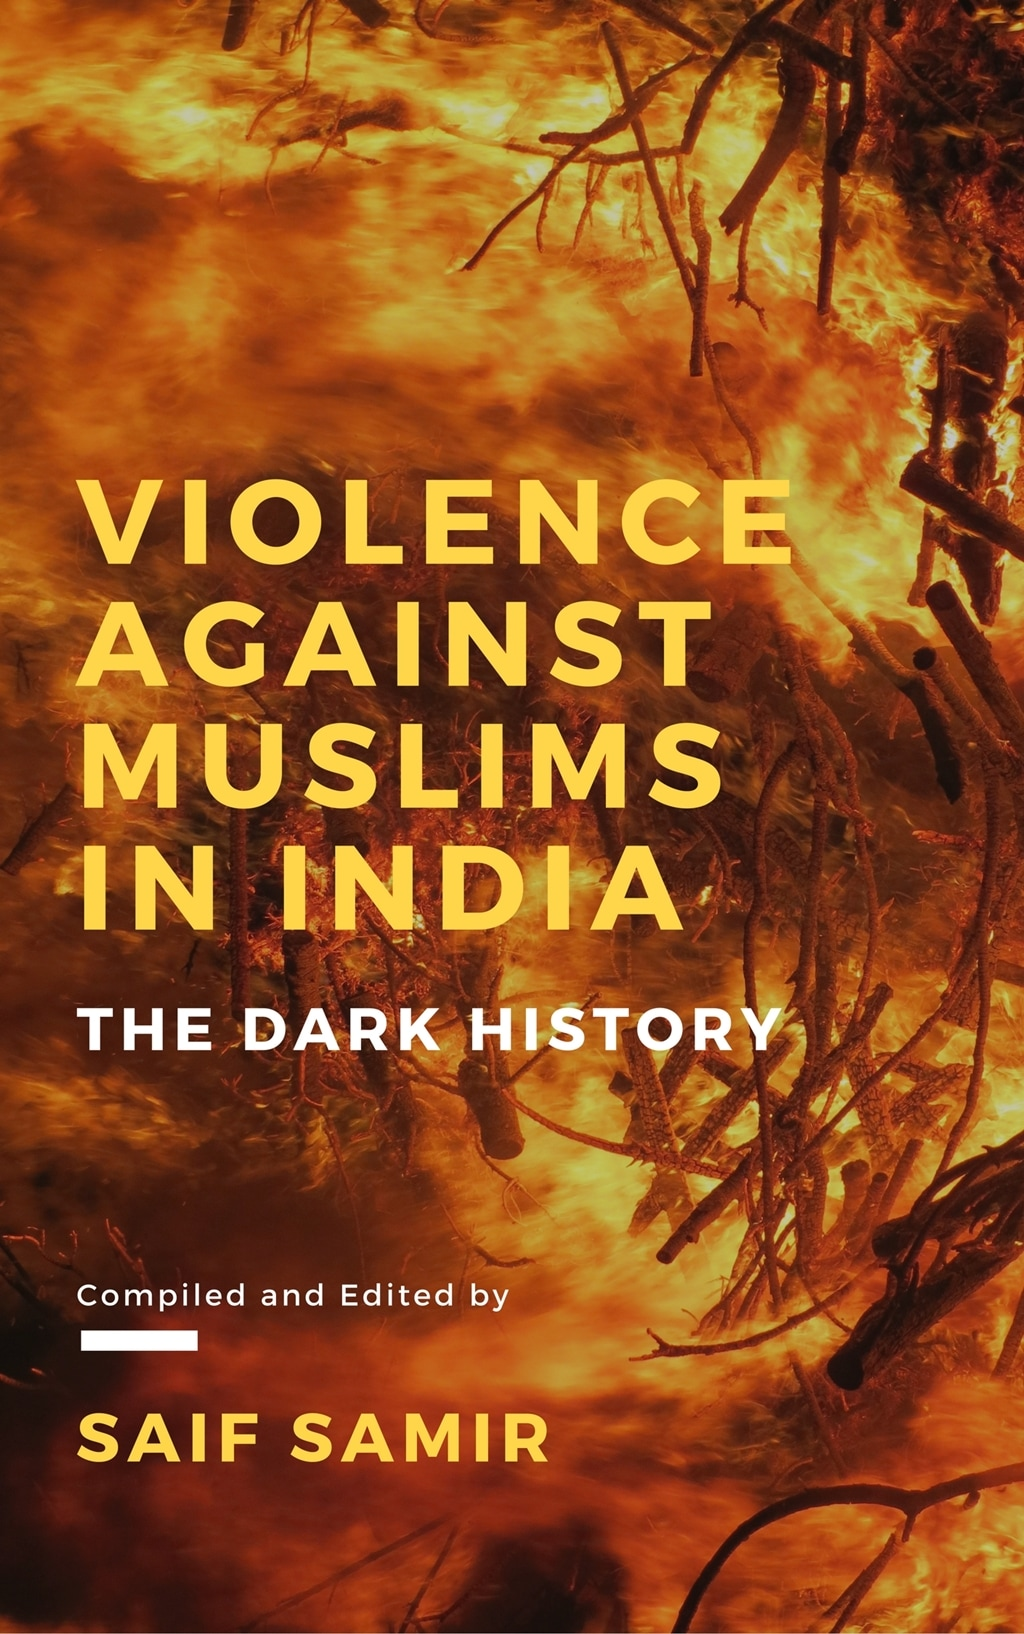 Violence Against Muslims in India: The Dark History By Saif Samir